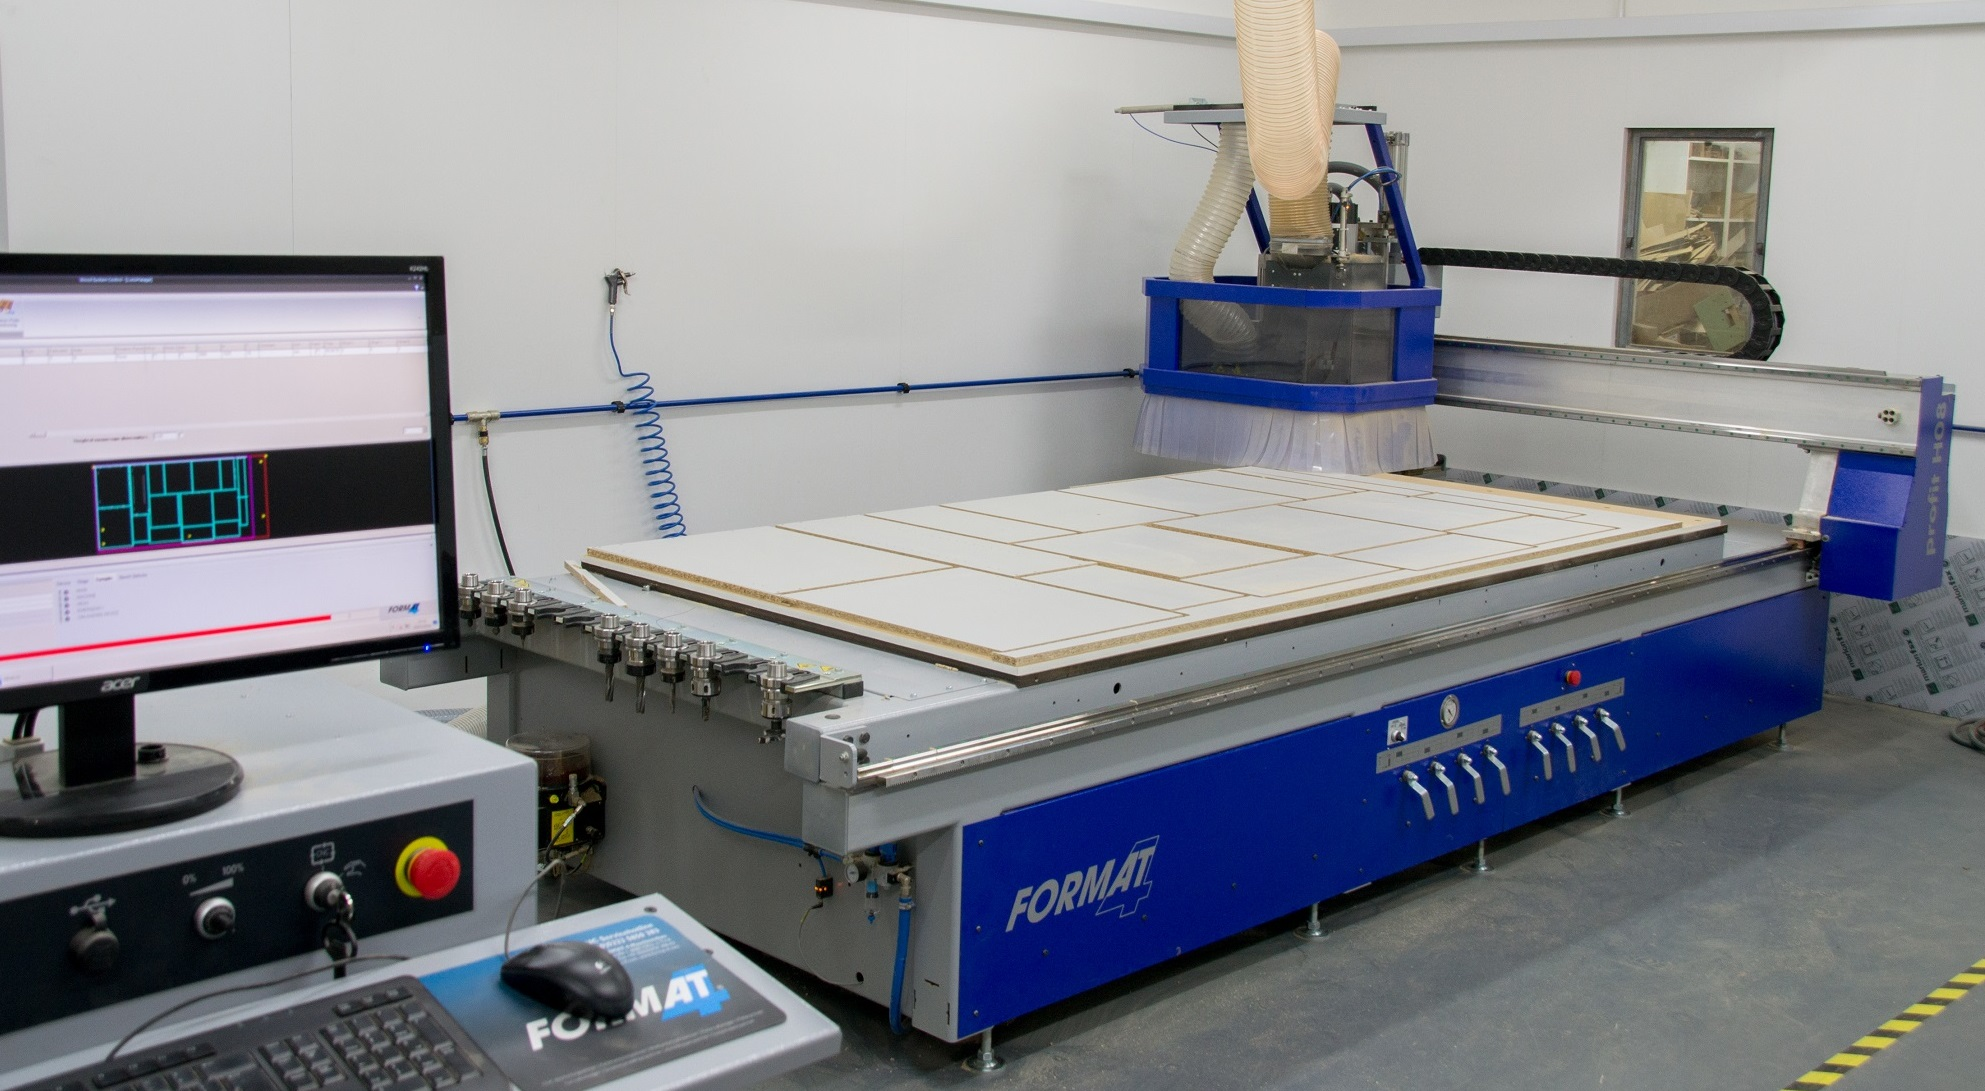 Our CNC machine based at the Partridge Kitchens workshop